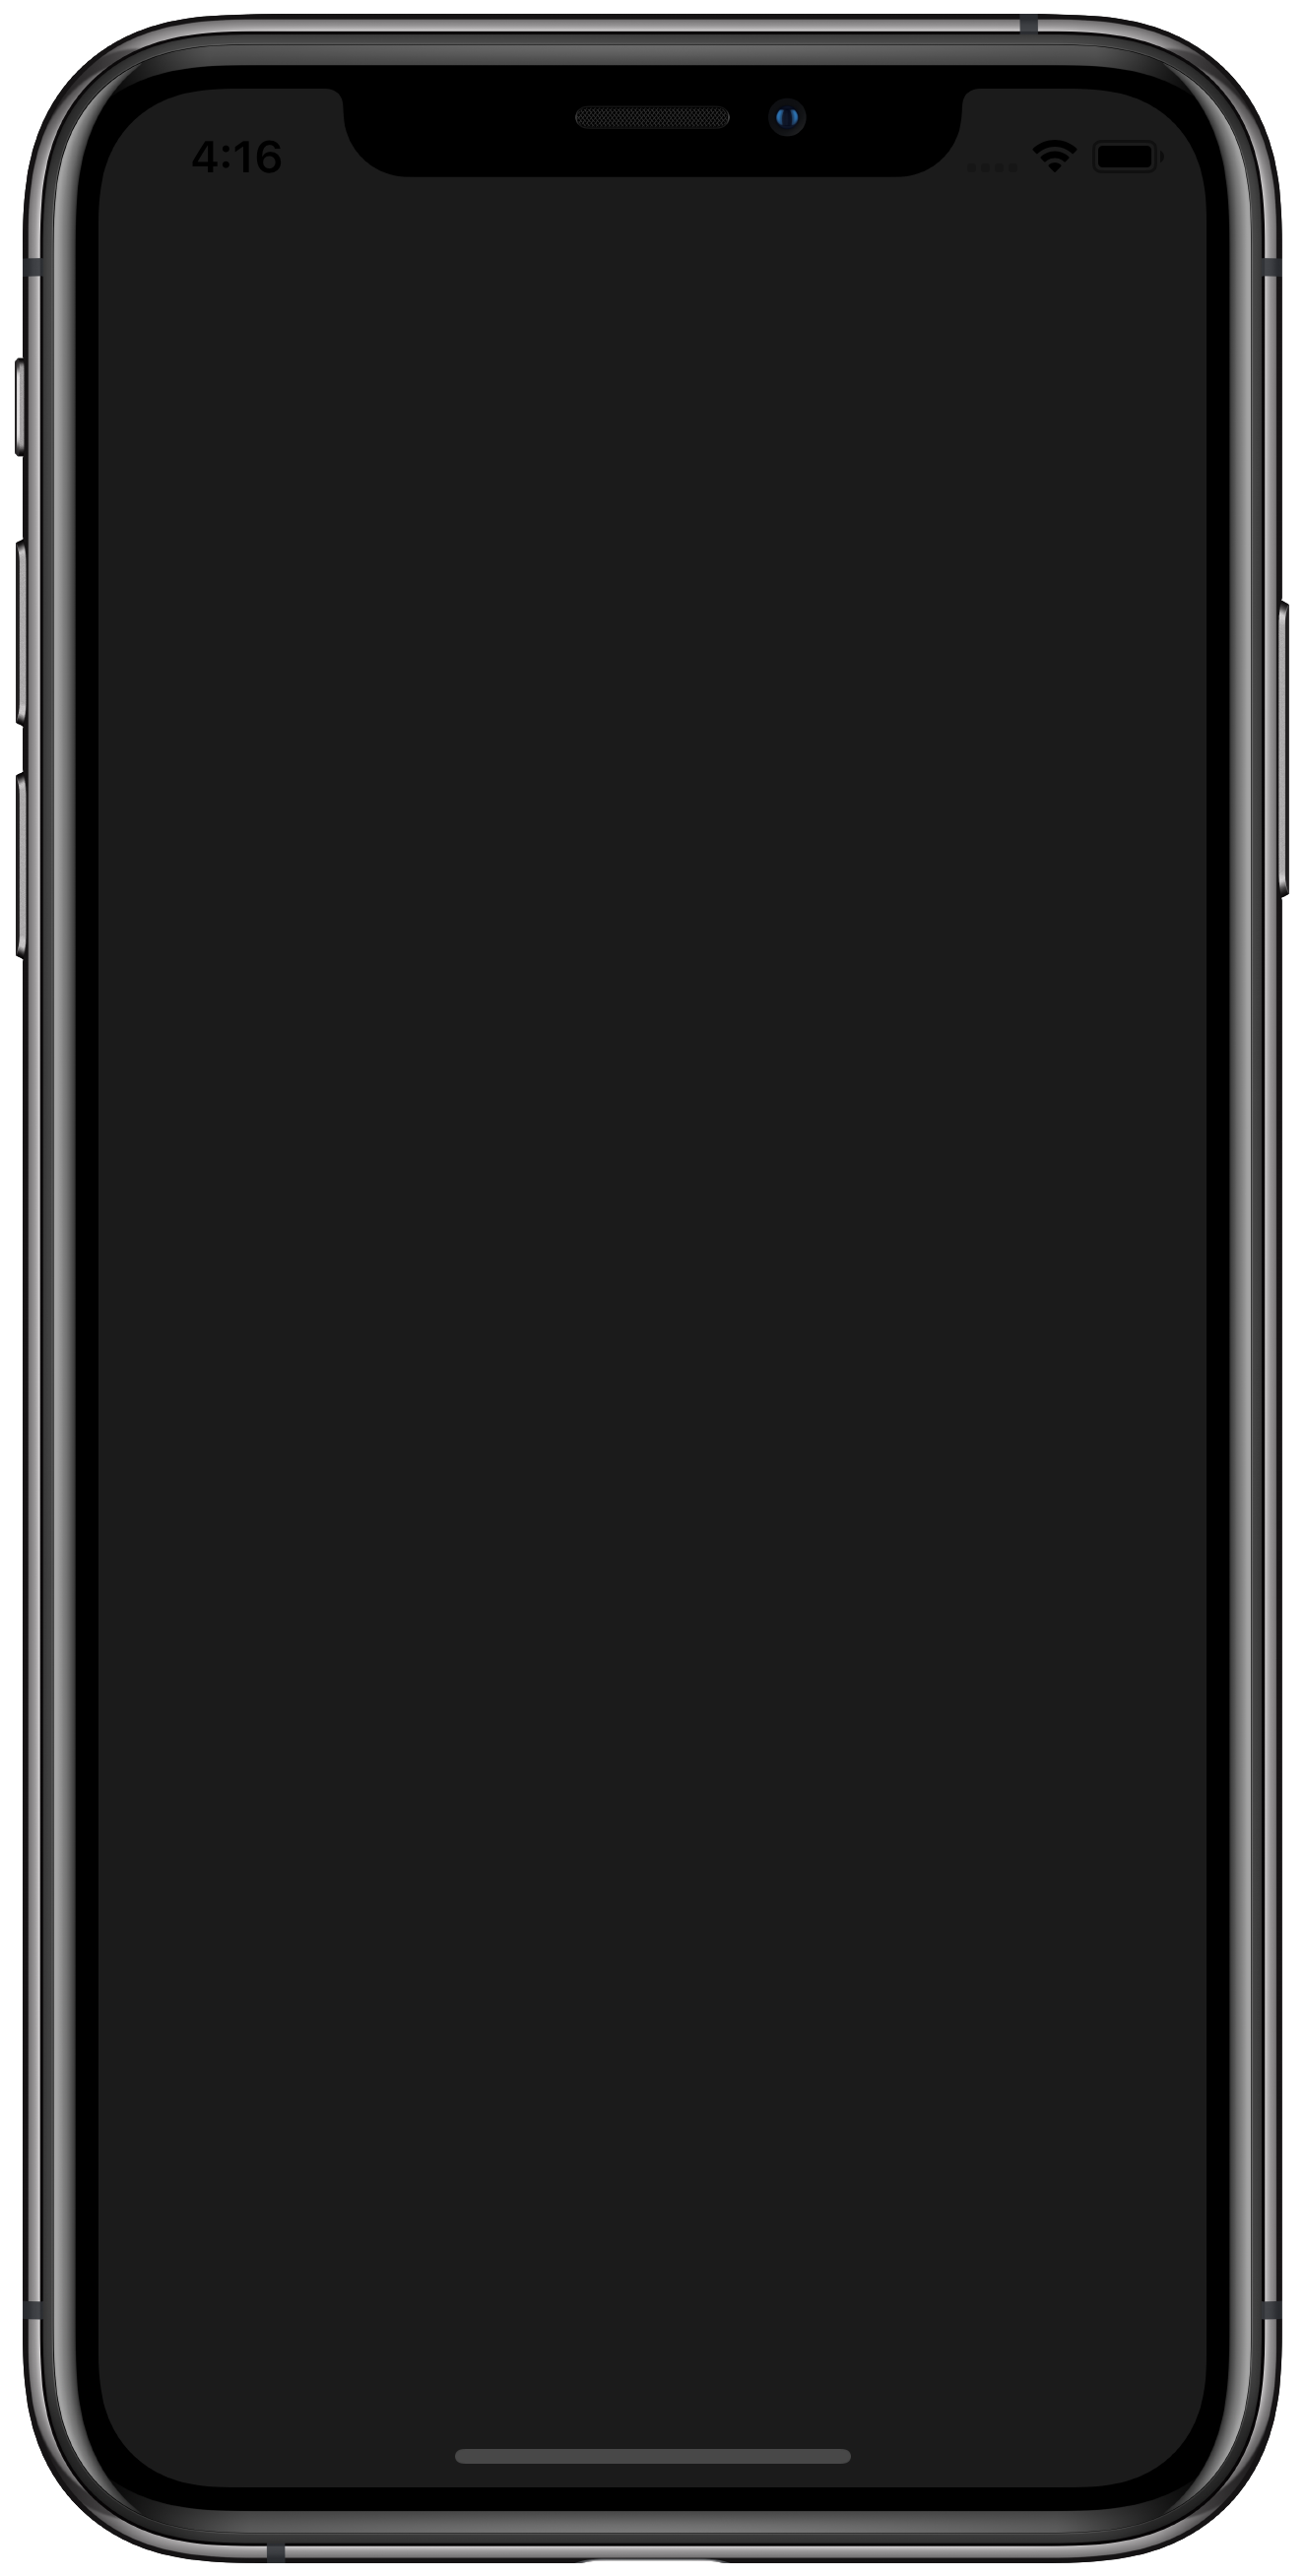 Dark iPhone app